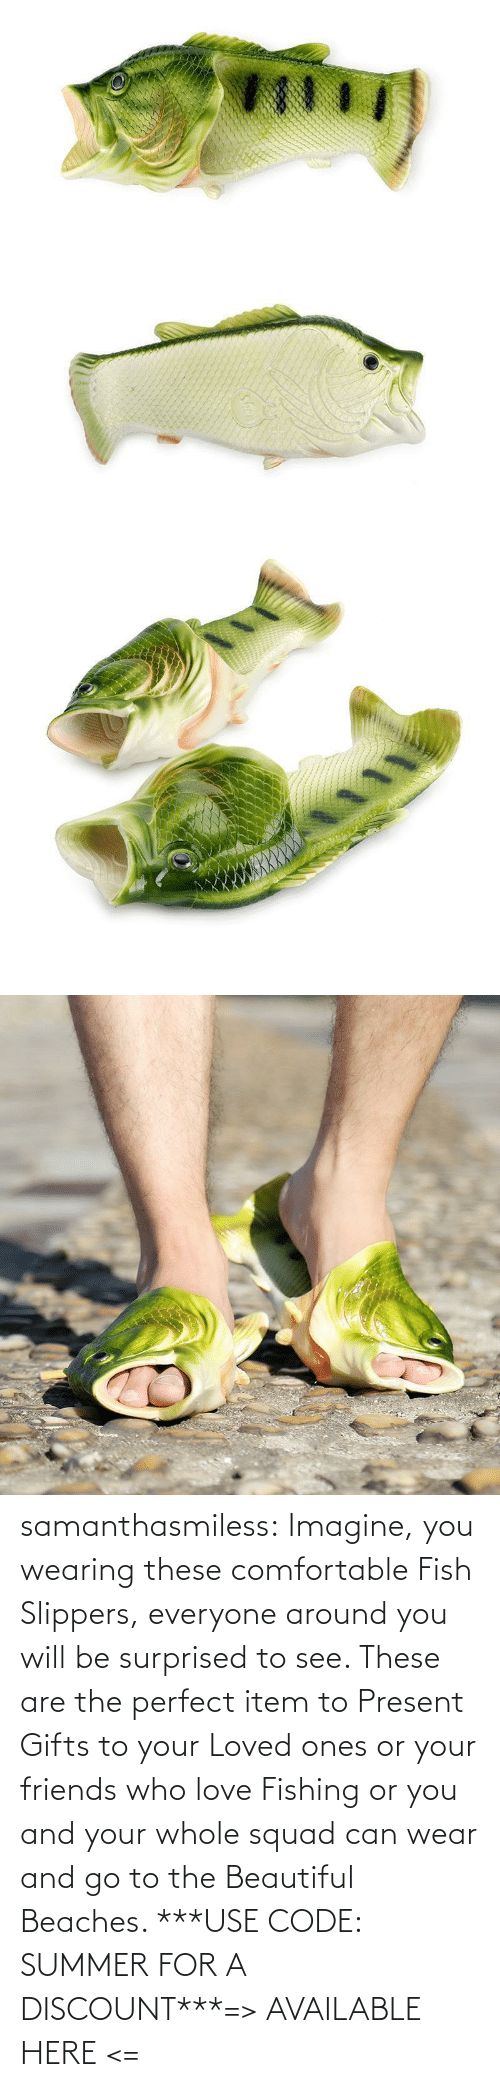 Fish: samanthasmiless:  Imagine, you wearing these comfortable Fish Slippers, everyone around you will be surprised to see. These are the perfect item to Present Gifts to your Loved ones or your friends who love Fishing or you and your whole squad can wear and go to the Beautiful Beaches. ***USE CODE: SUMMER FOR A DISCOUNT***=> AVAILABLE HERE <=